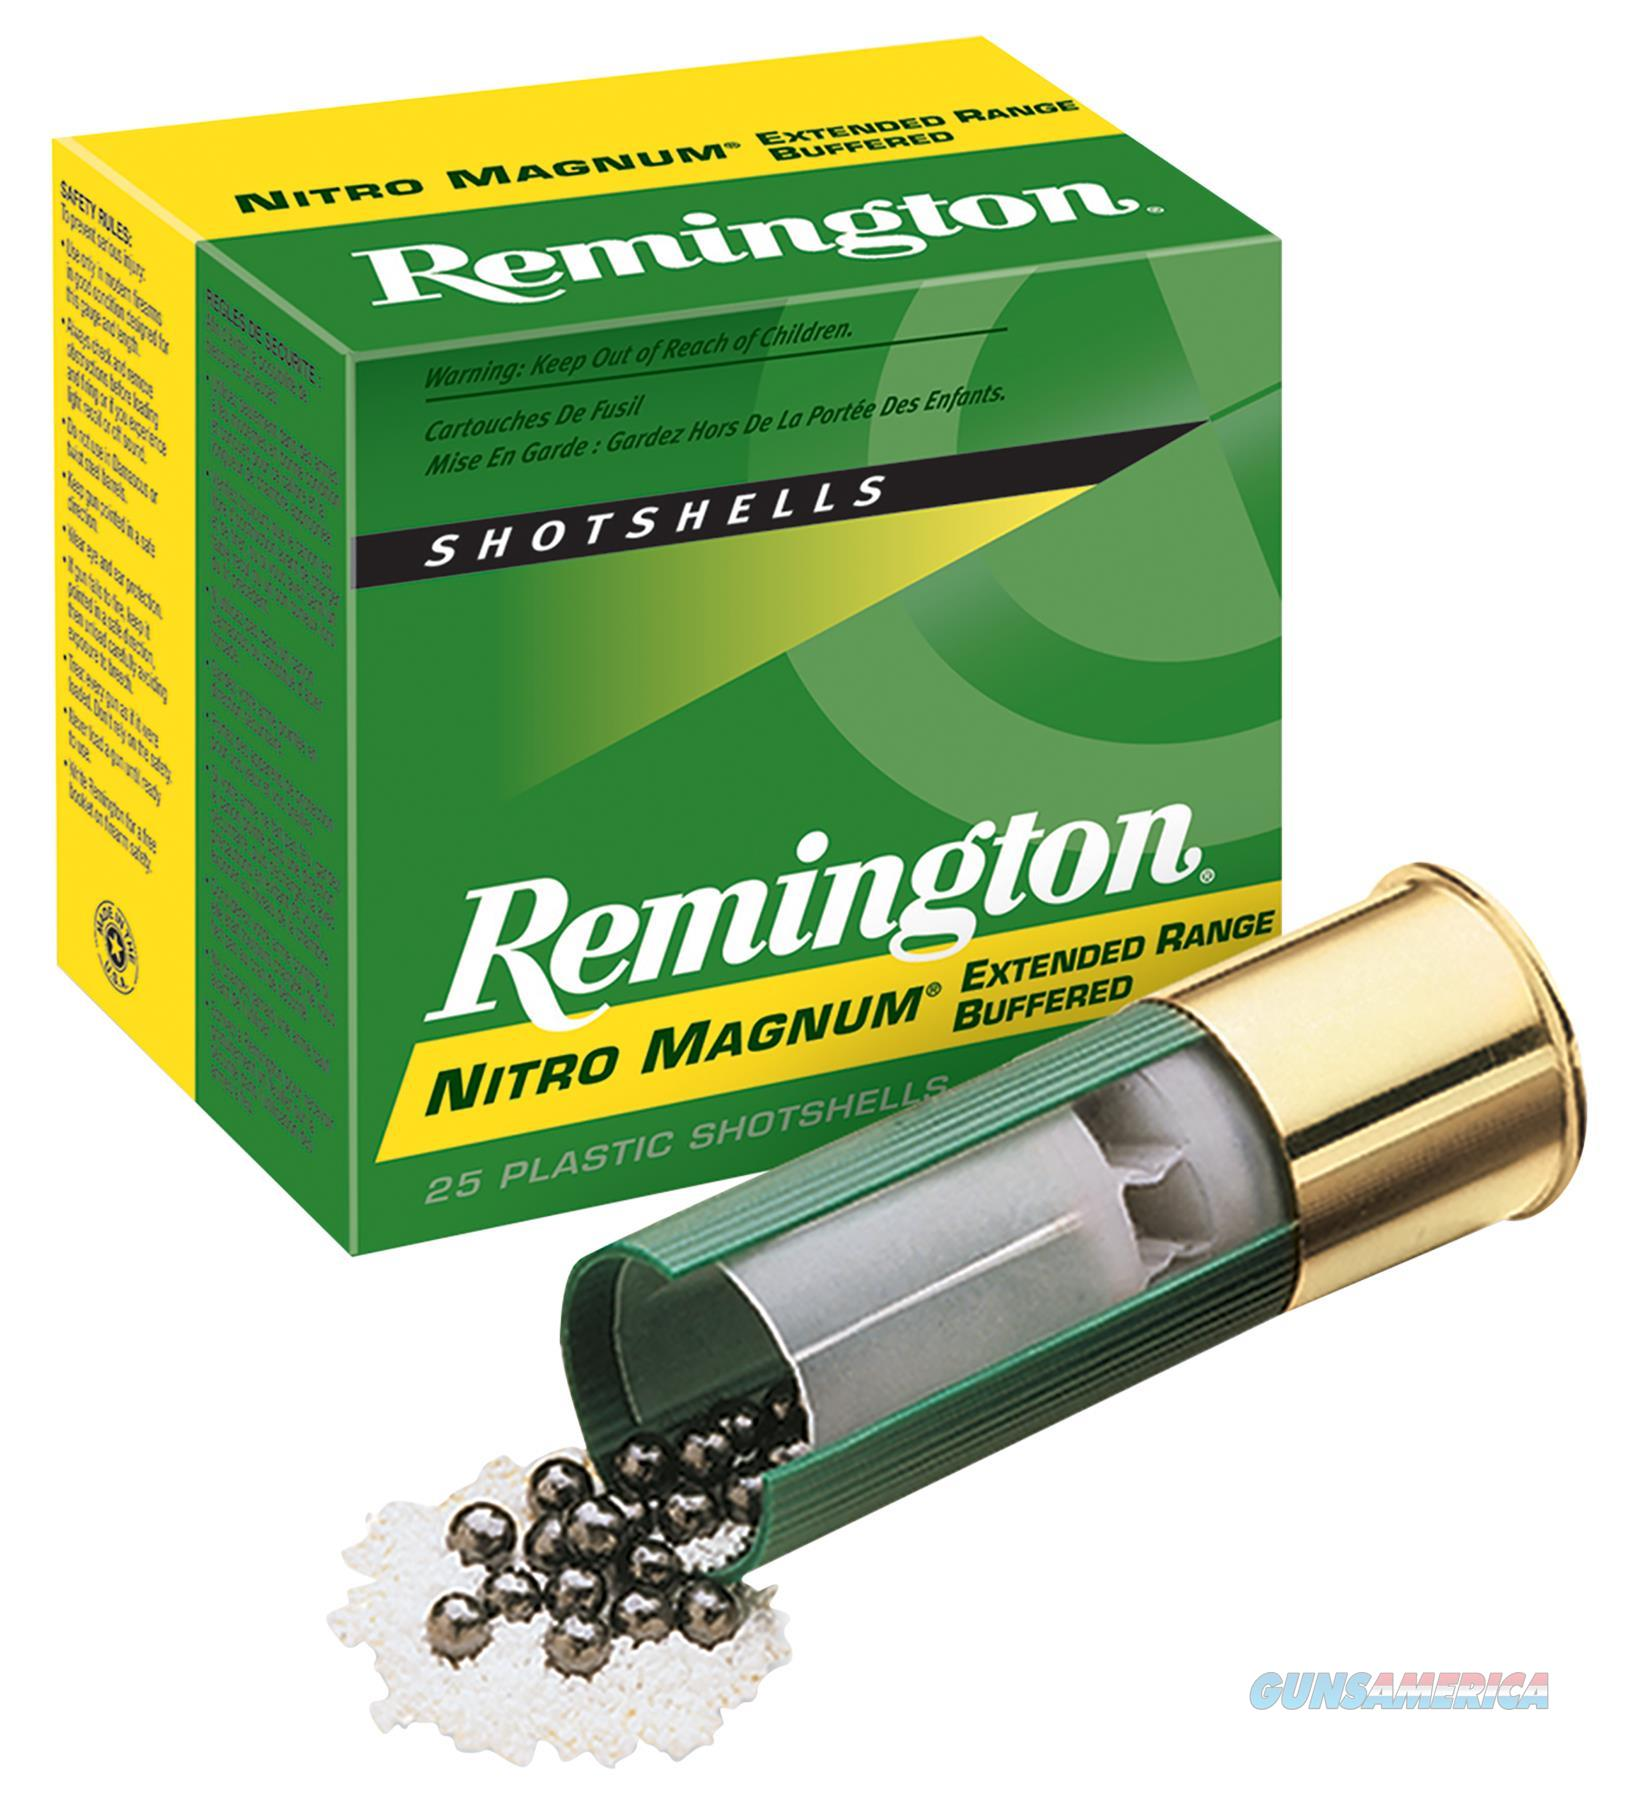 "Rem Nm12h2 Nitro Mag Loads 12 Ga 3"" 1-7/8 Oz 2 Shot 25Box/10Case NM12H2  Non-Guns > Ammunition"